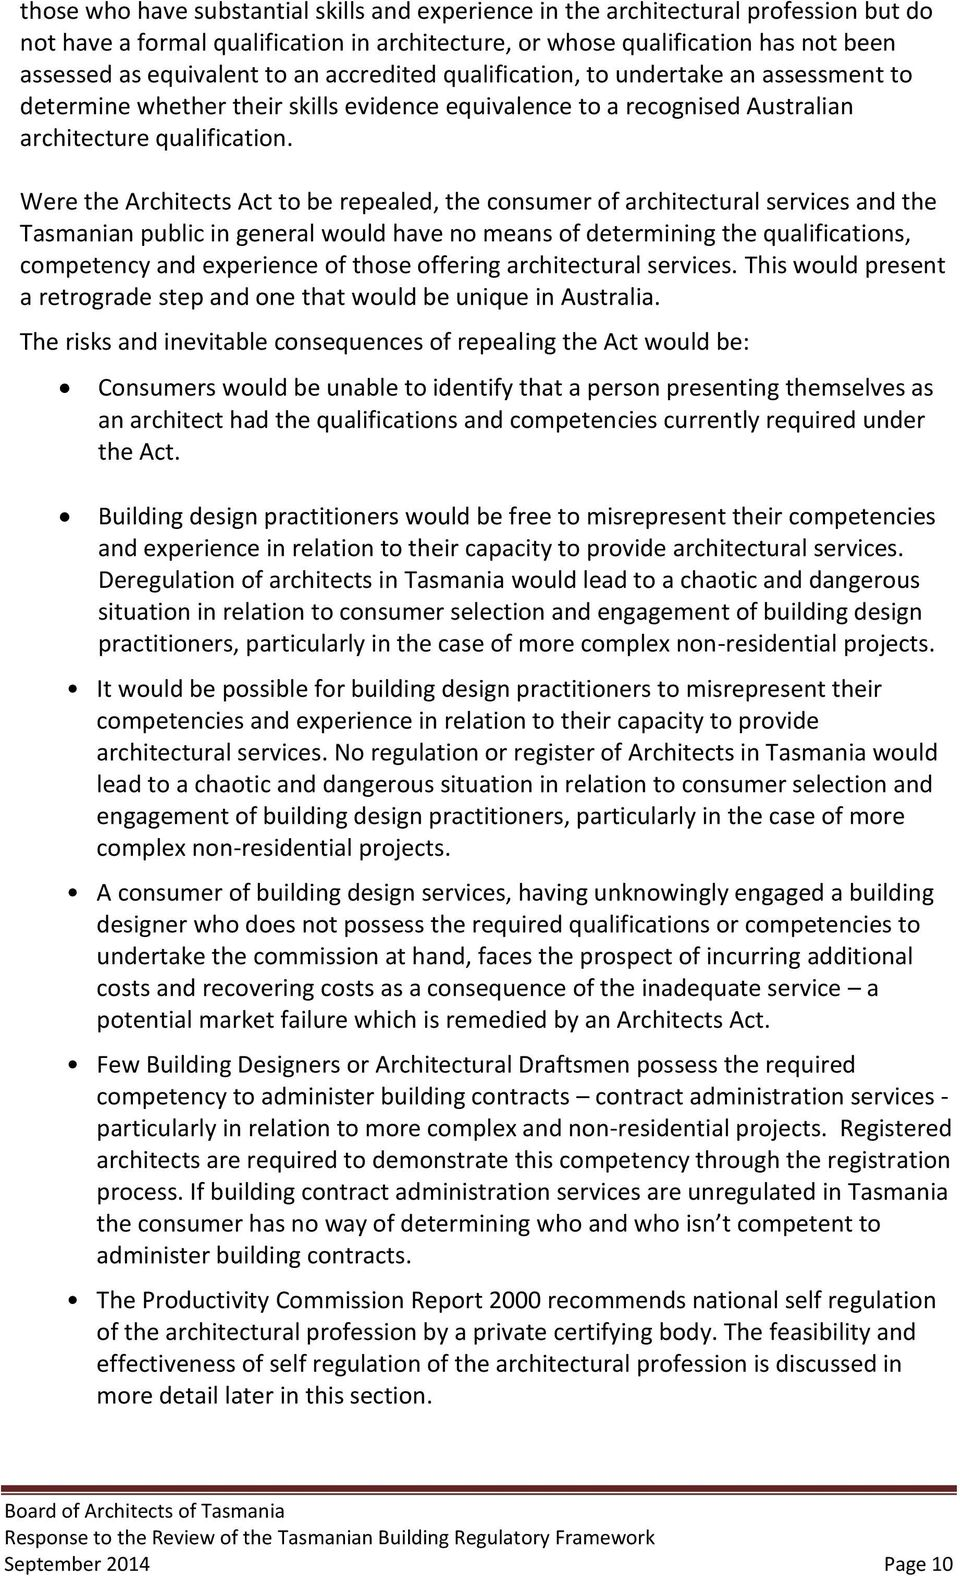 Were the Architects Act to be repealed, the consumer of architectural services and the Tasmanian public in general would have no means of determining the qualifications, competency and experience of